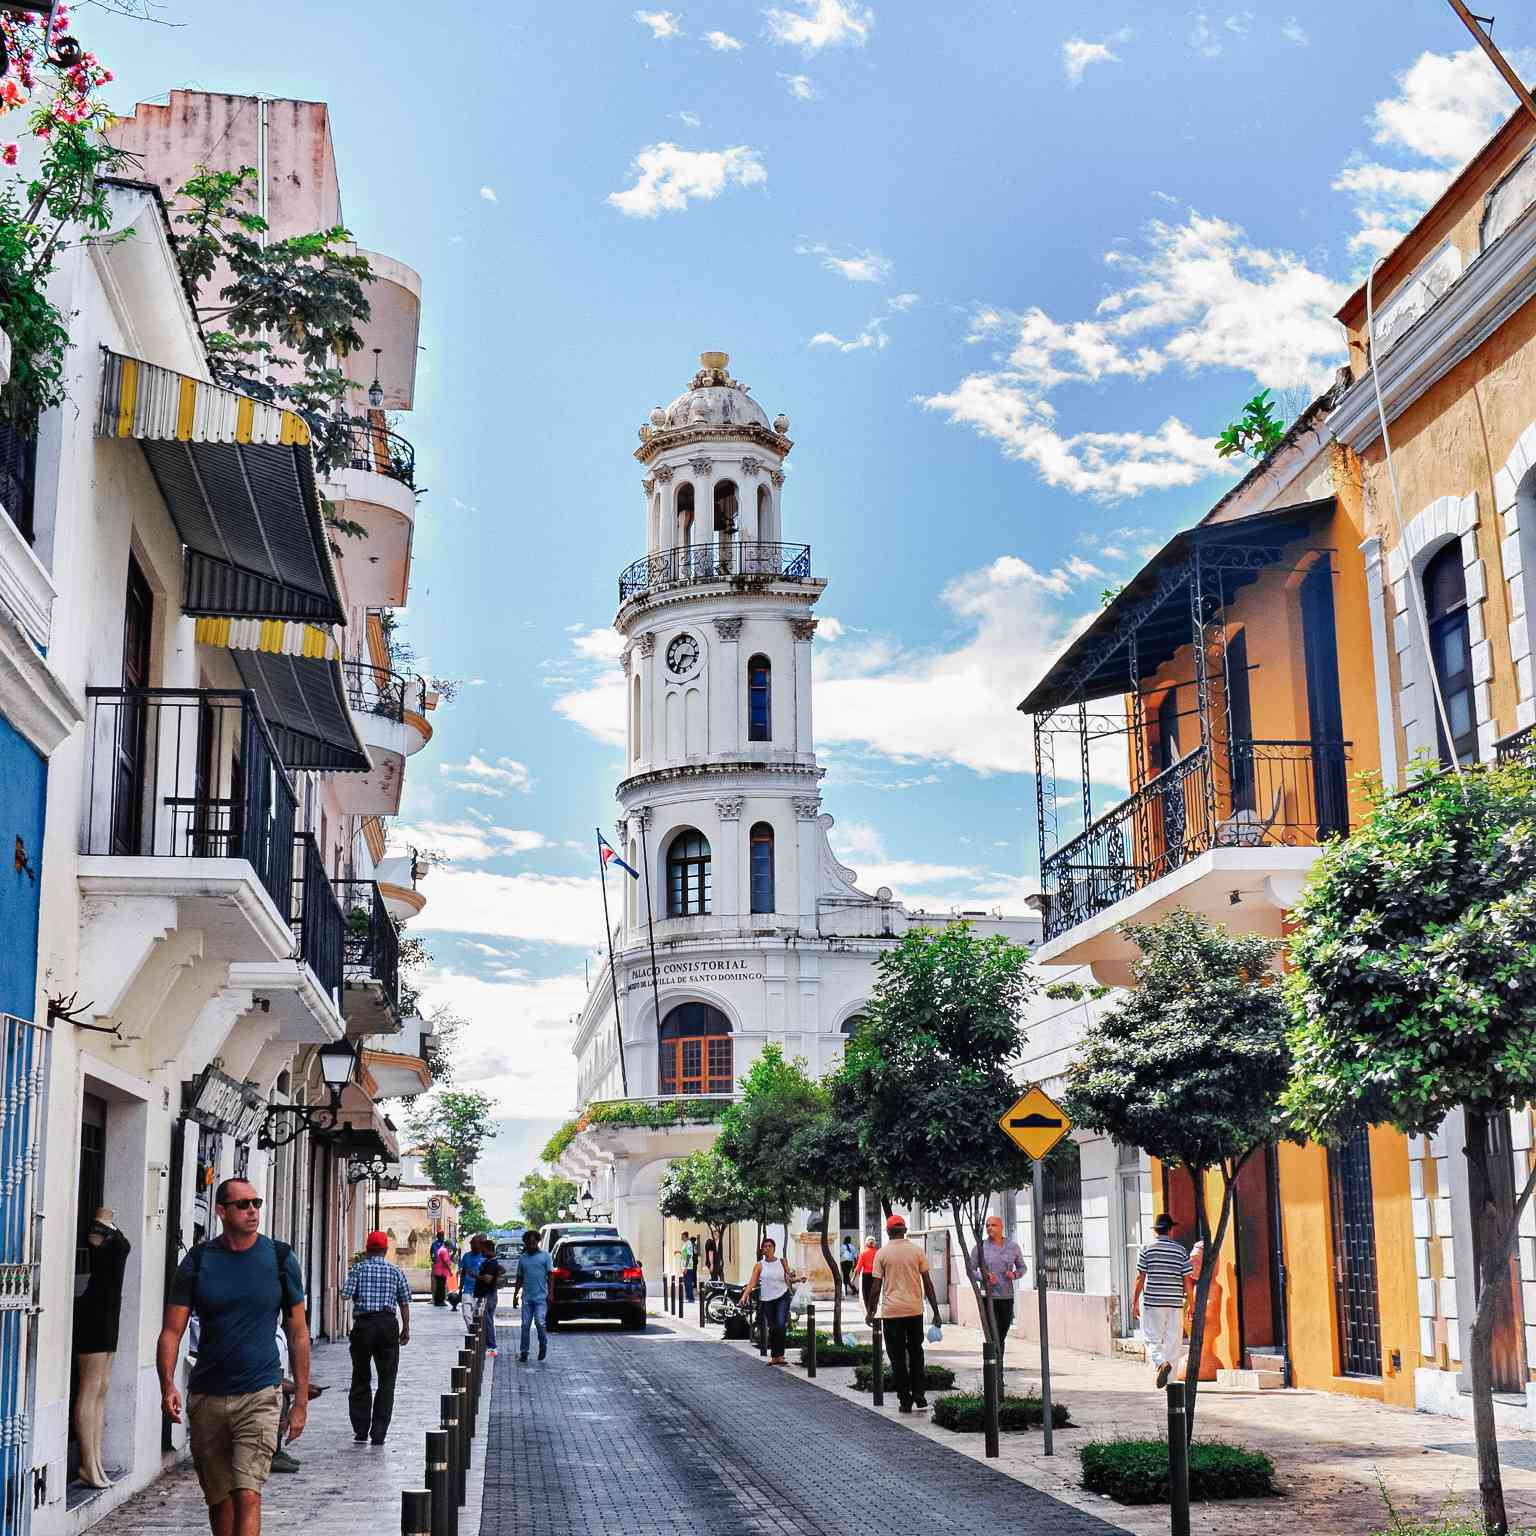 Street with colonial architecture in the zona colonia